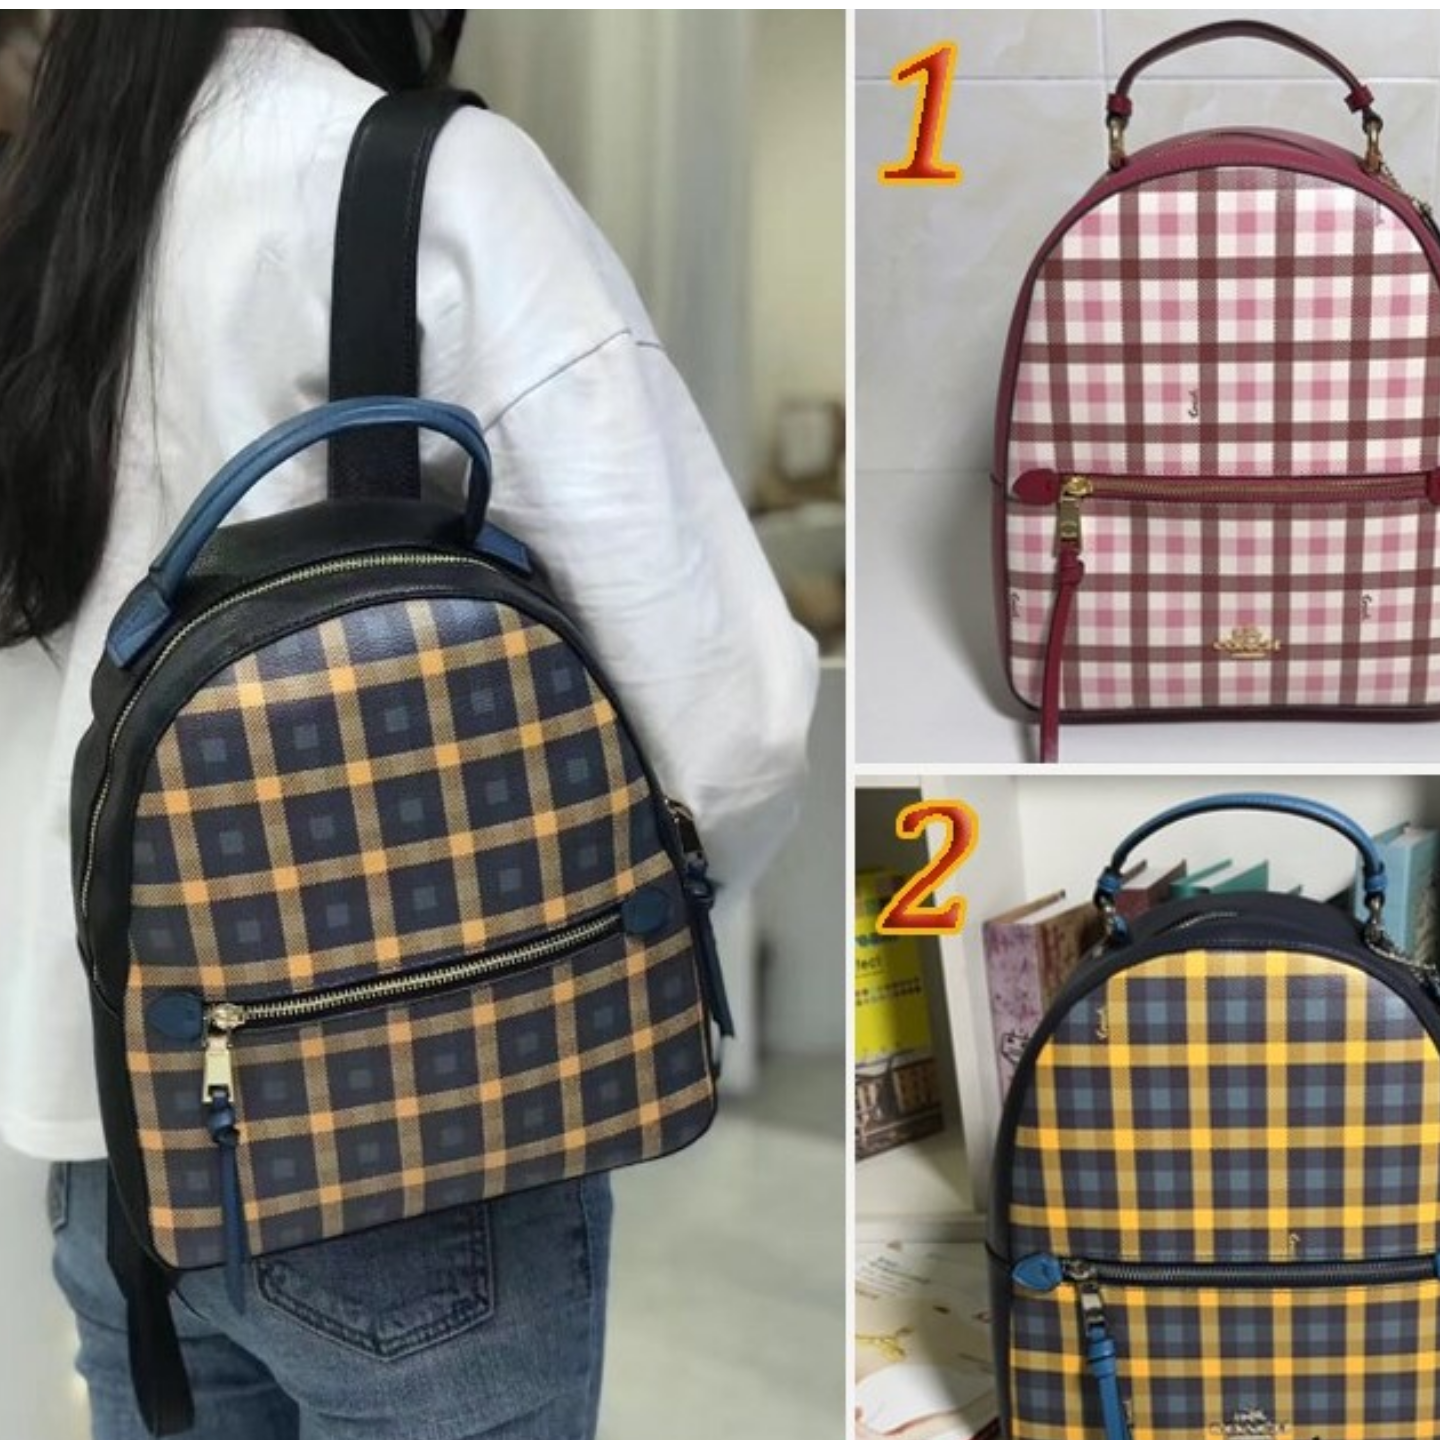 (SG COD) Coach Women's backpack F76625 plaid pattern backpack casual backpack